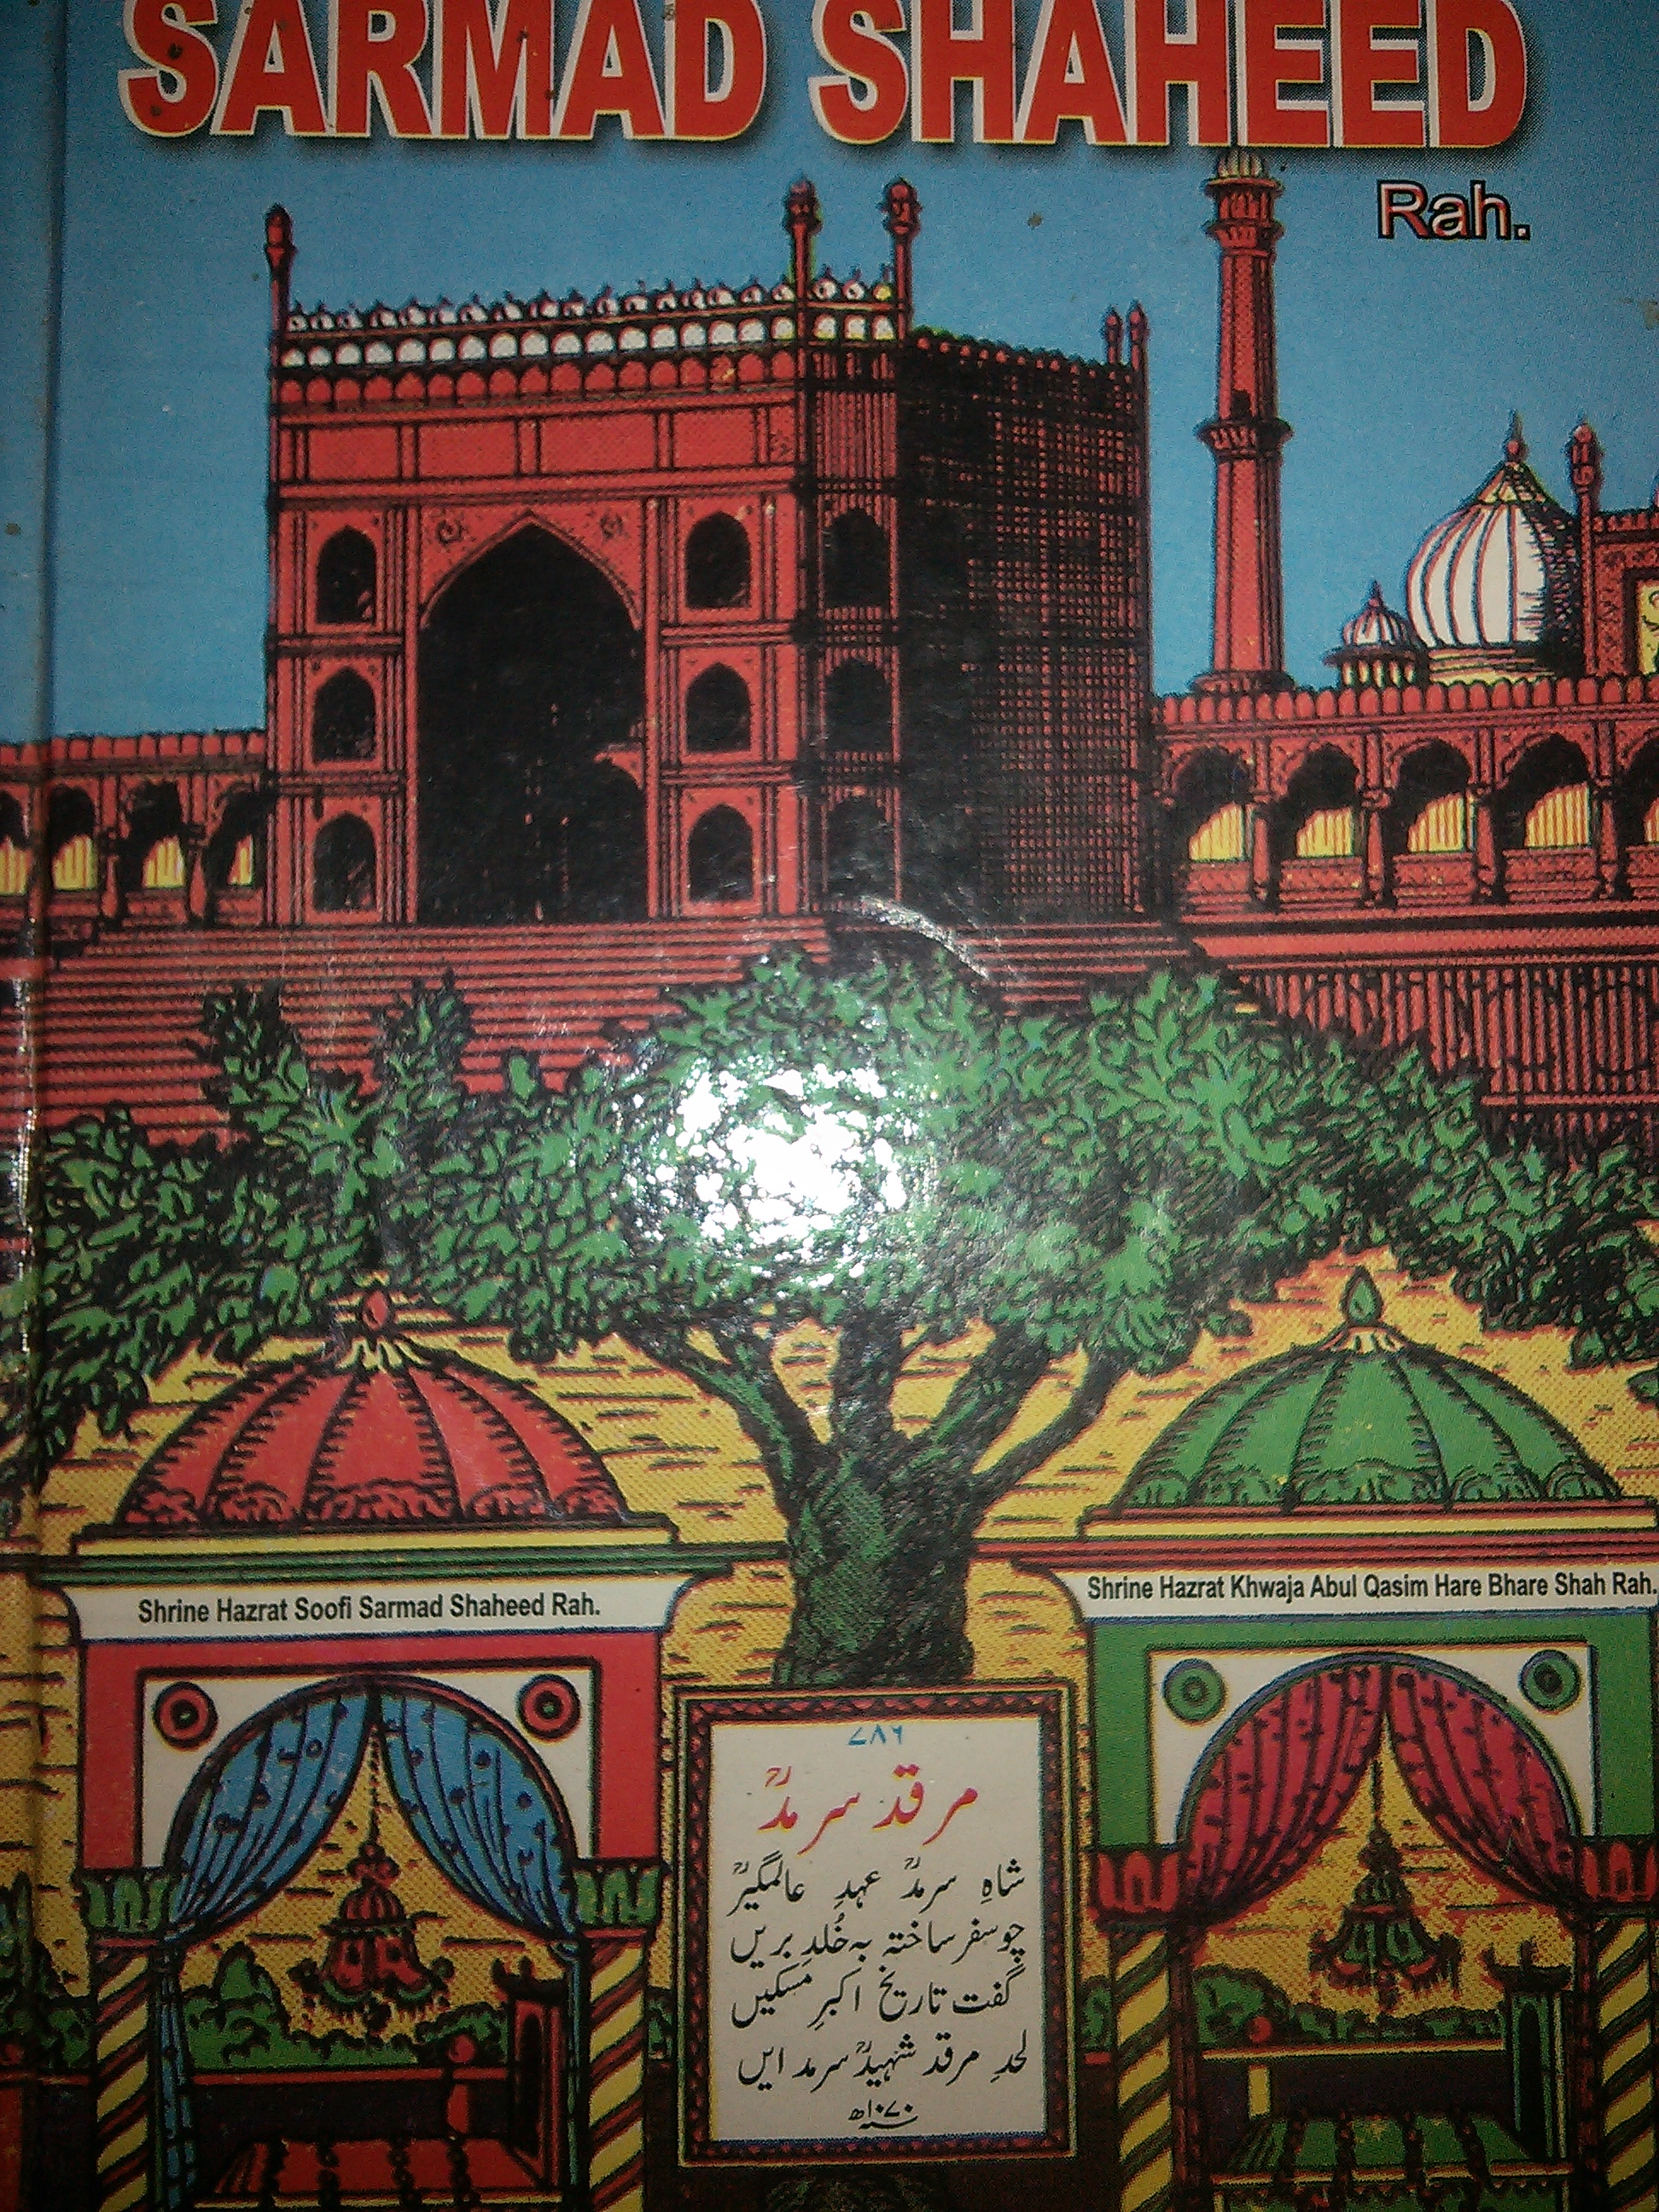 Sarmad Shaheed Cover of the booklet in English, depicting the peepal tree under which the tombs lie